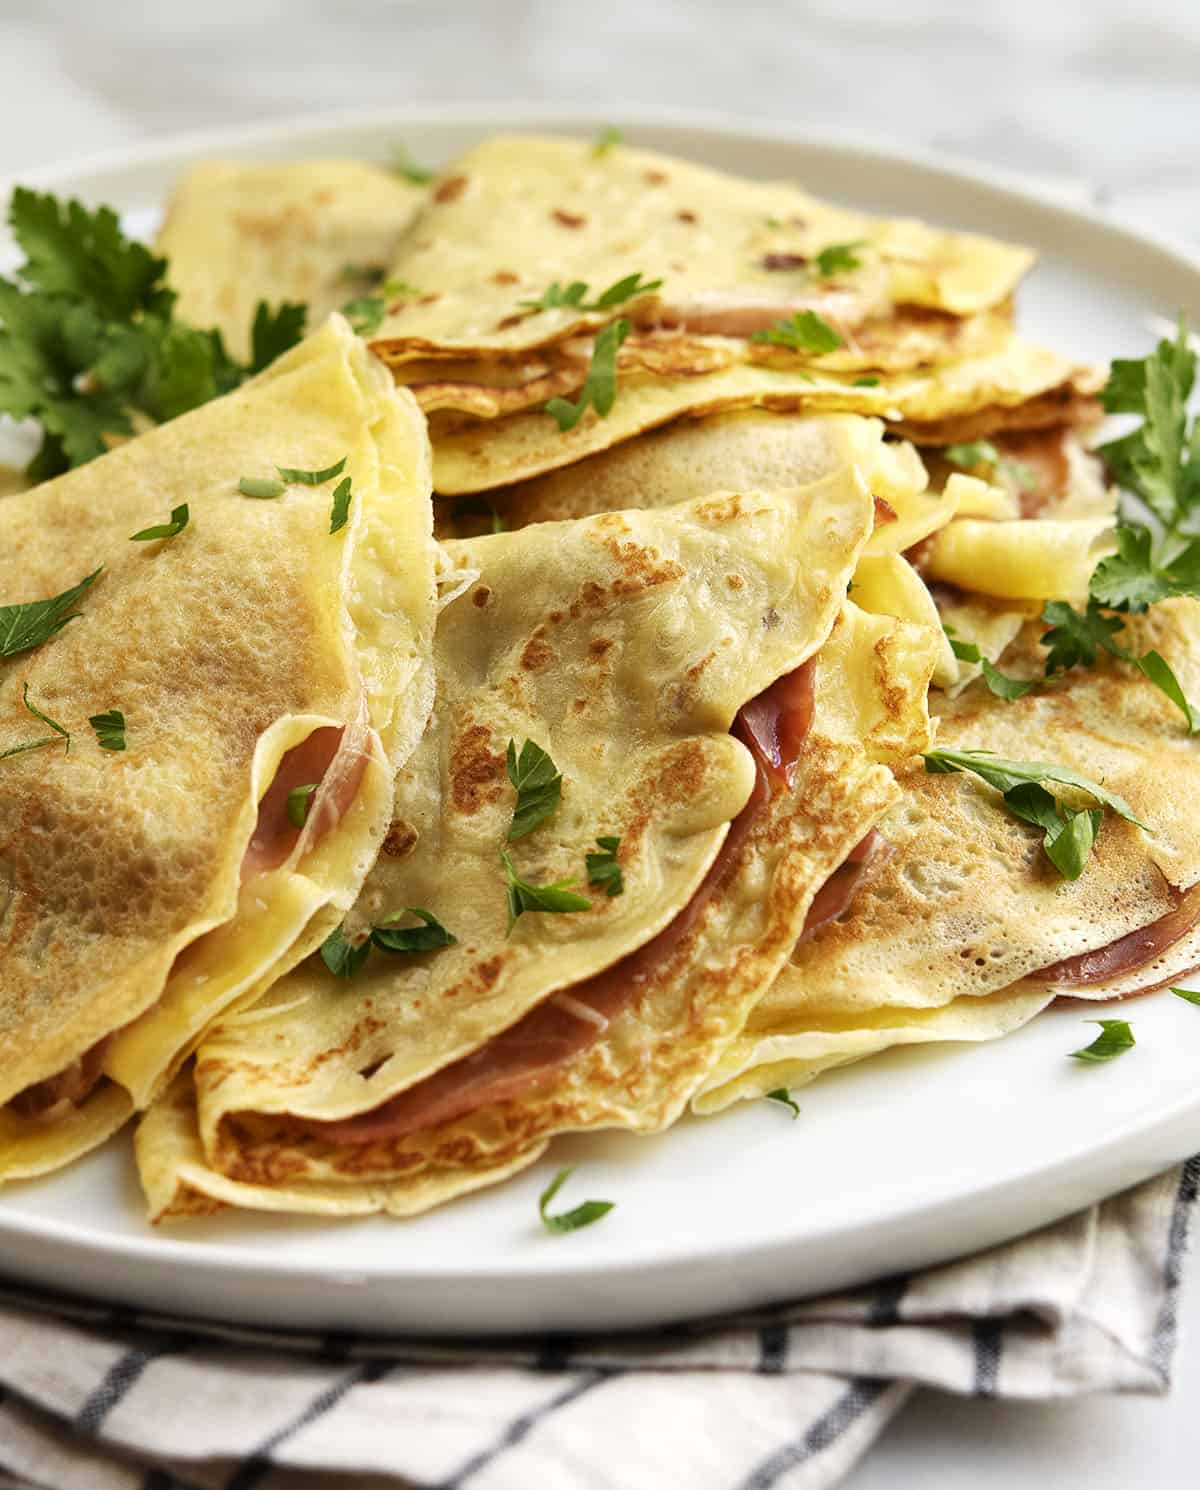 savory crepes layered on a white plate